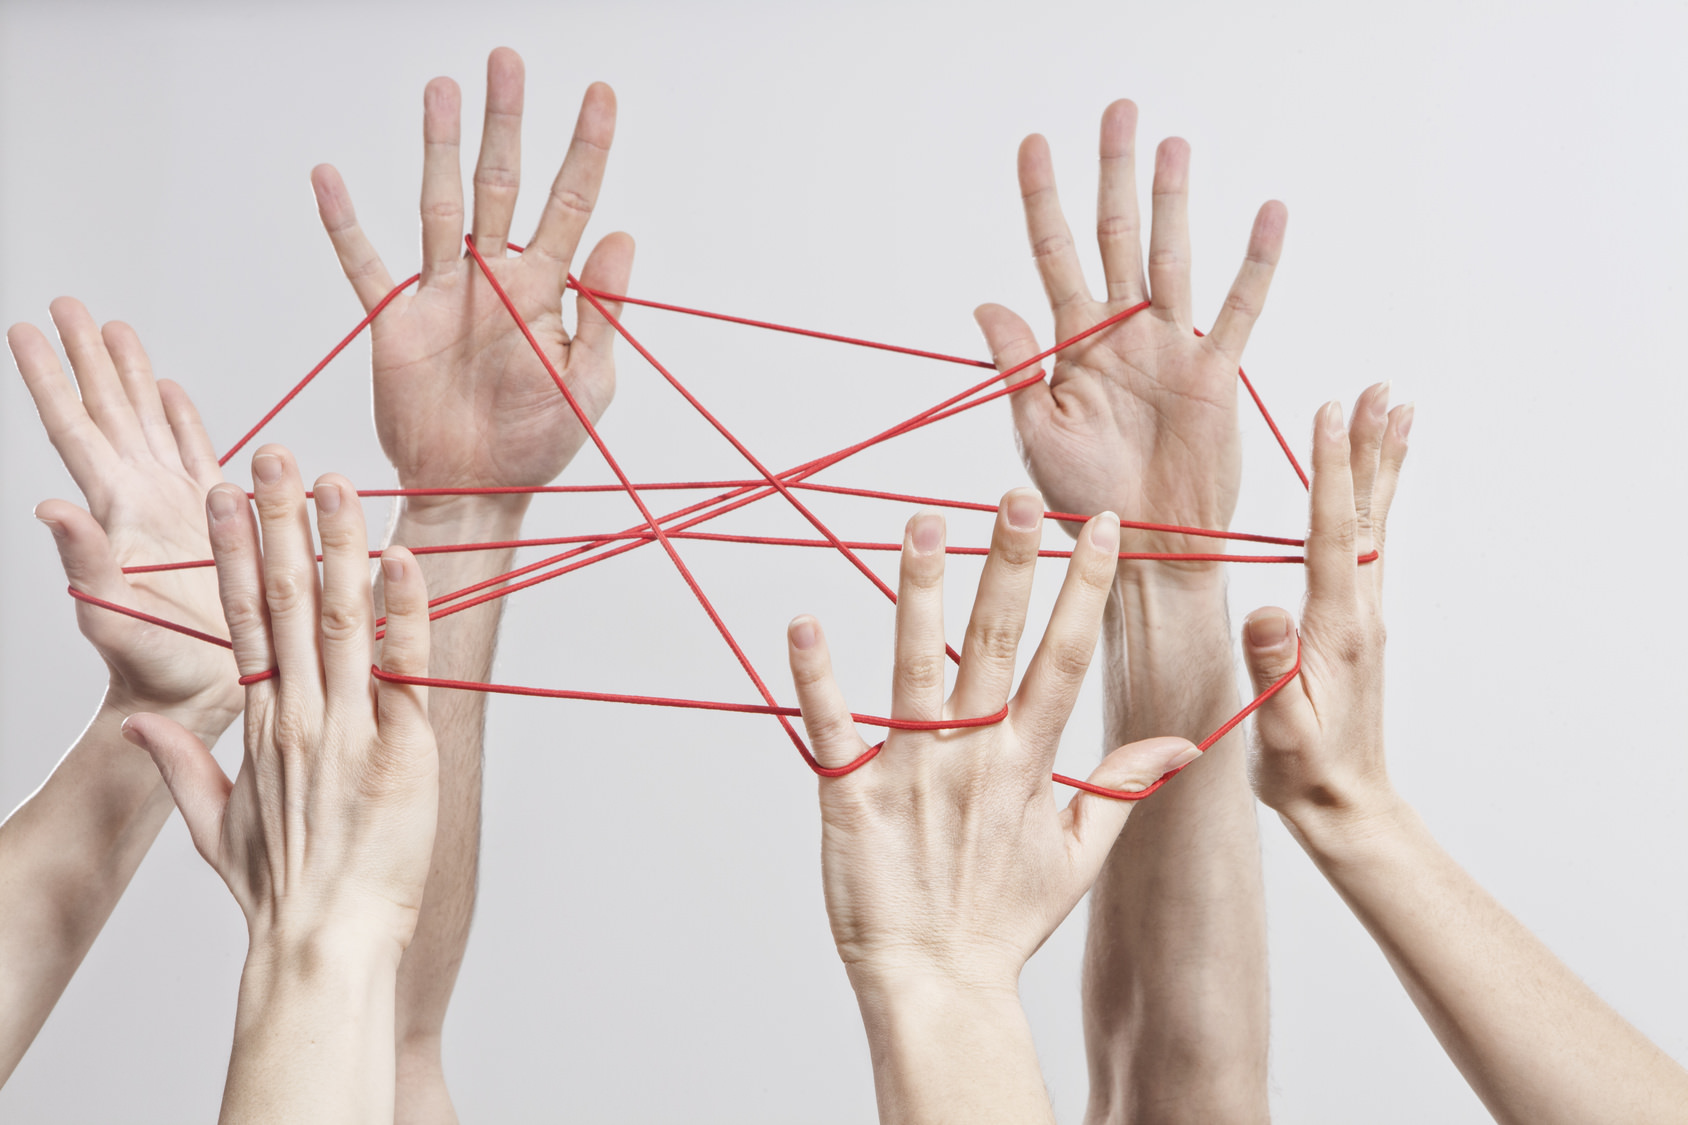 Connection, Team, Teamwork, Relationship, Hands, Cat's Cradle